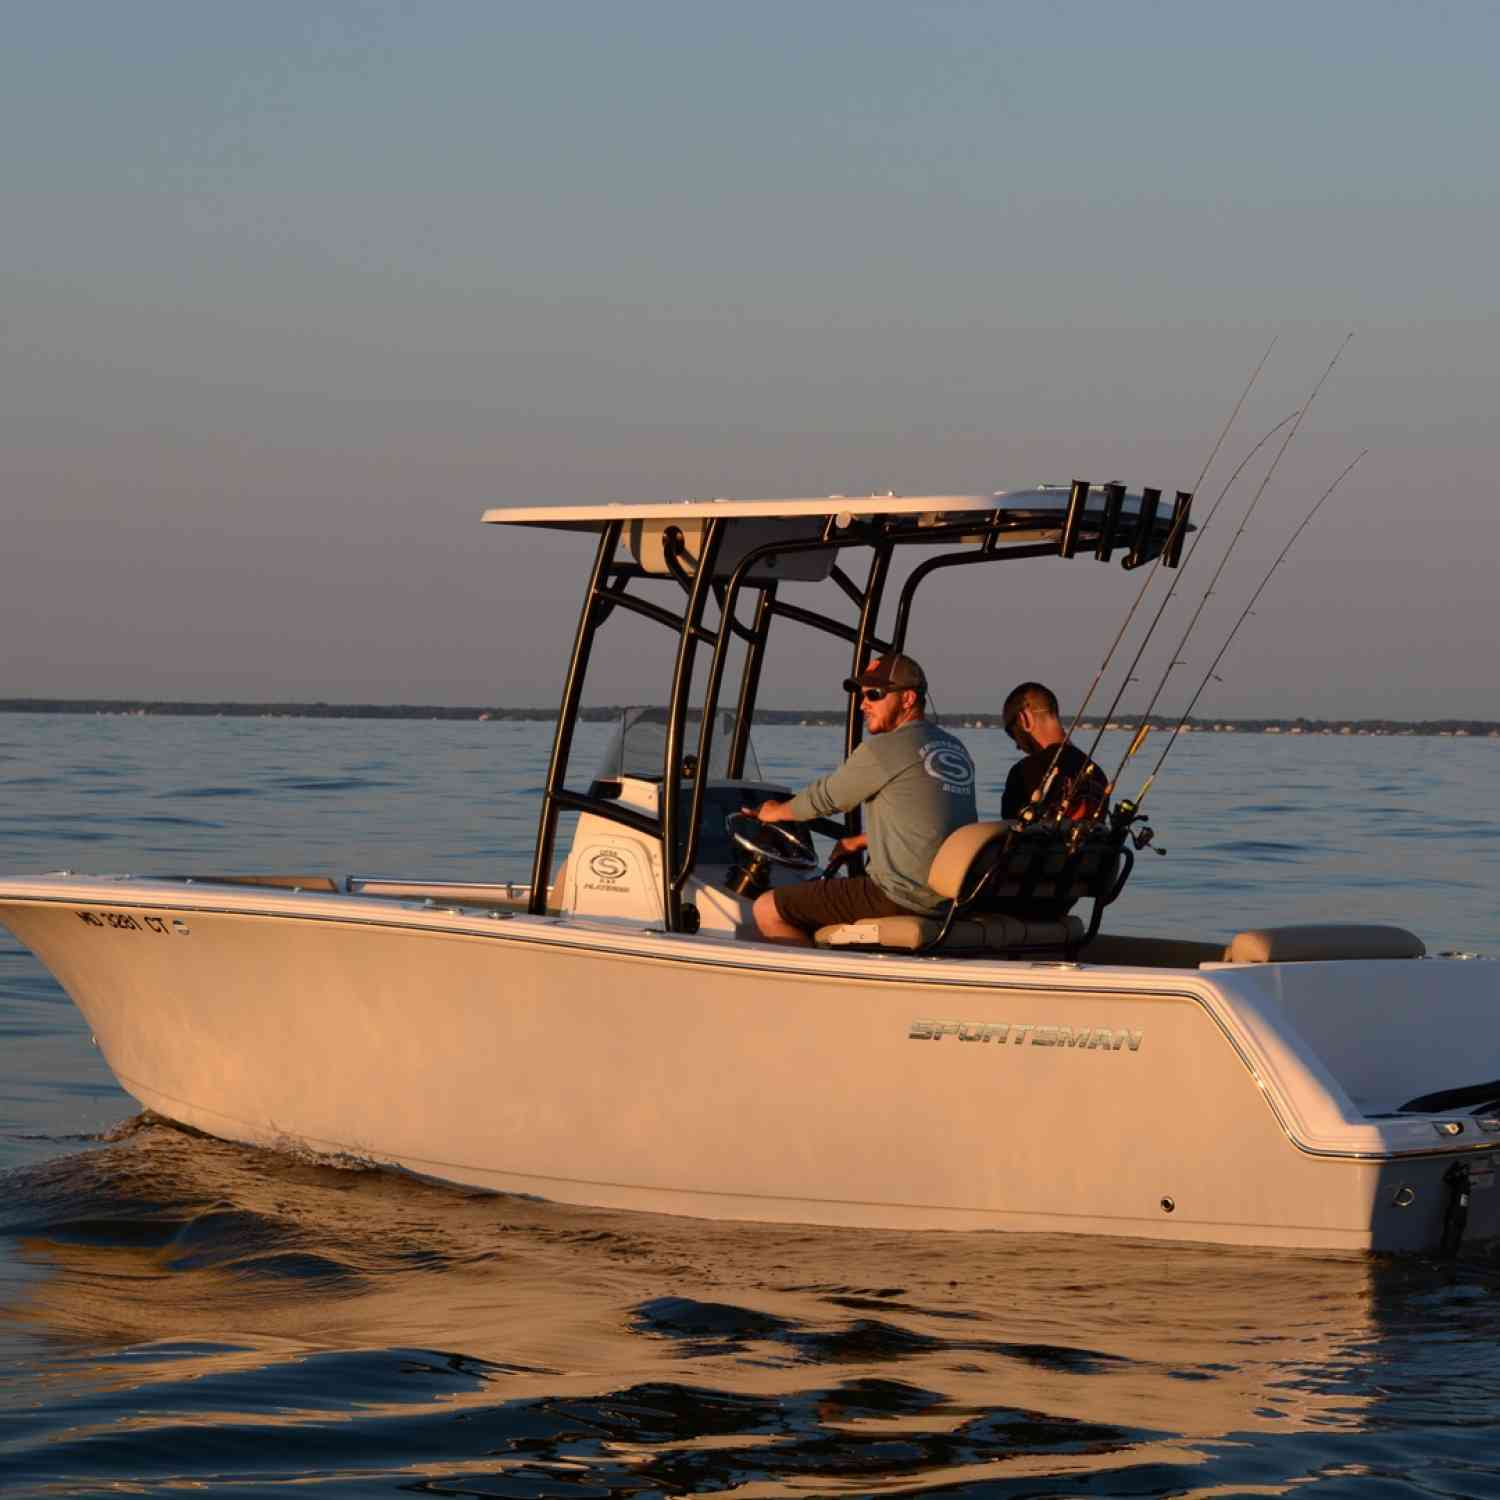 Title: In The Sunset - On board their Sportsman Open 232 Center Console - Location: Chesapeake bay, Maryland. Participating in the Photo Contest #SportsmanSeptember2018